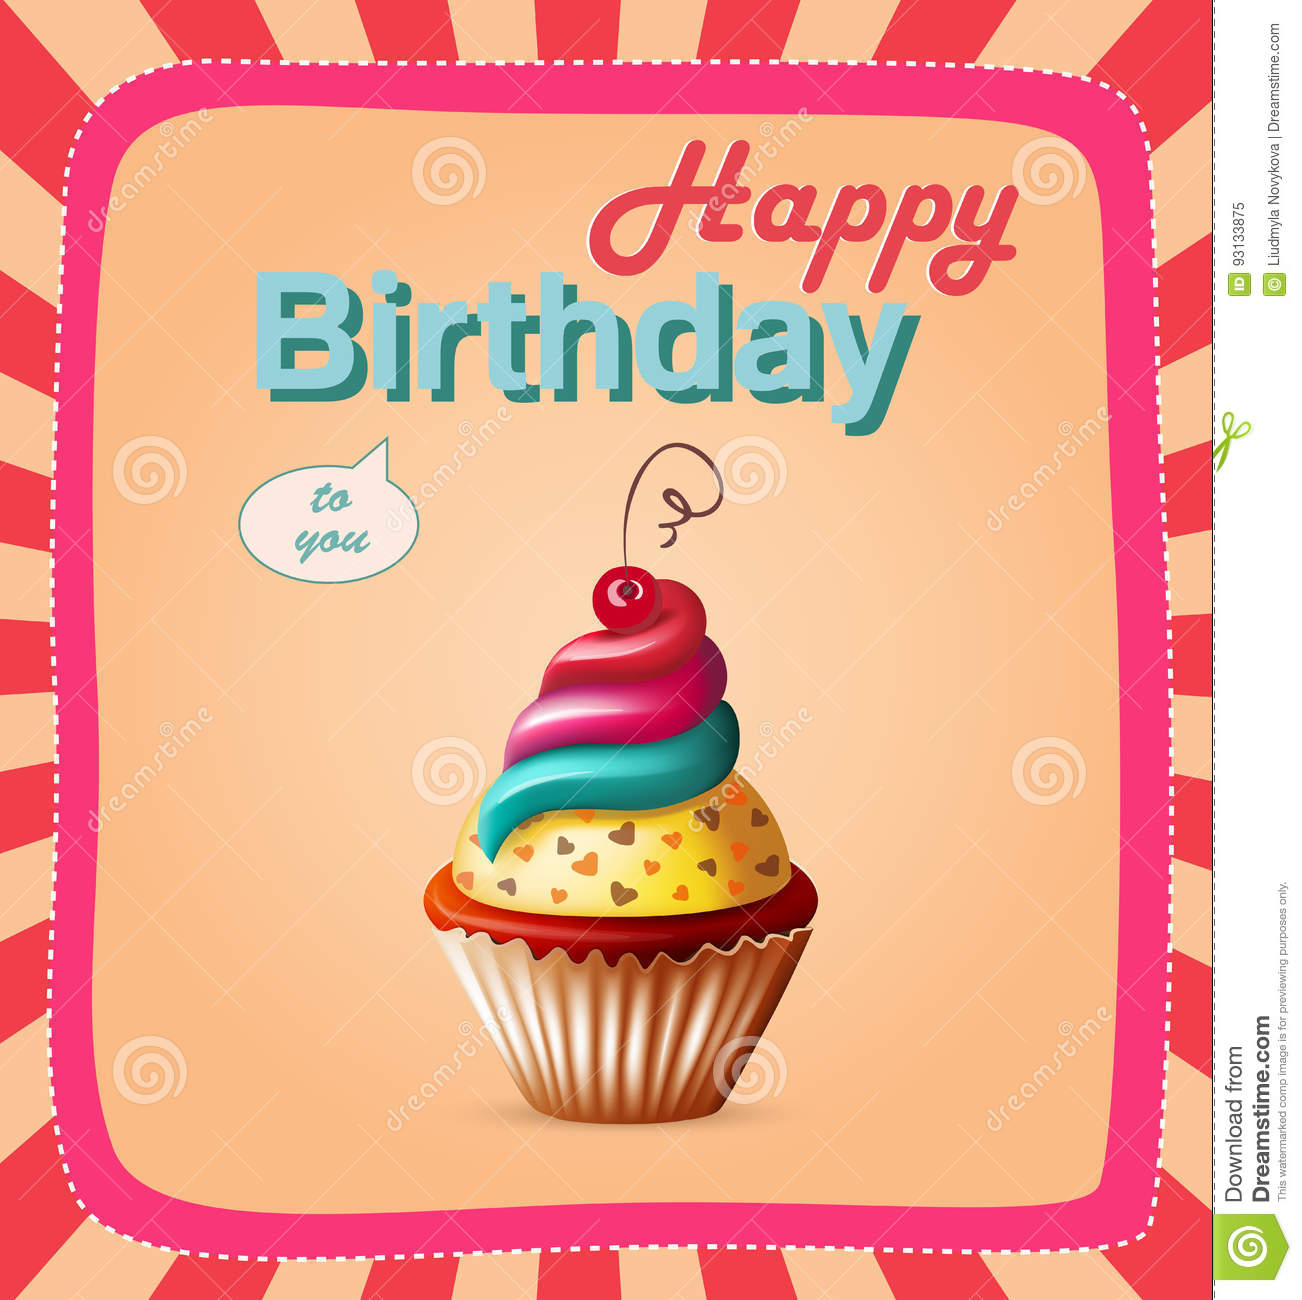 Happy Birthday Template Card With Cake And Text Stock